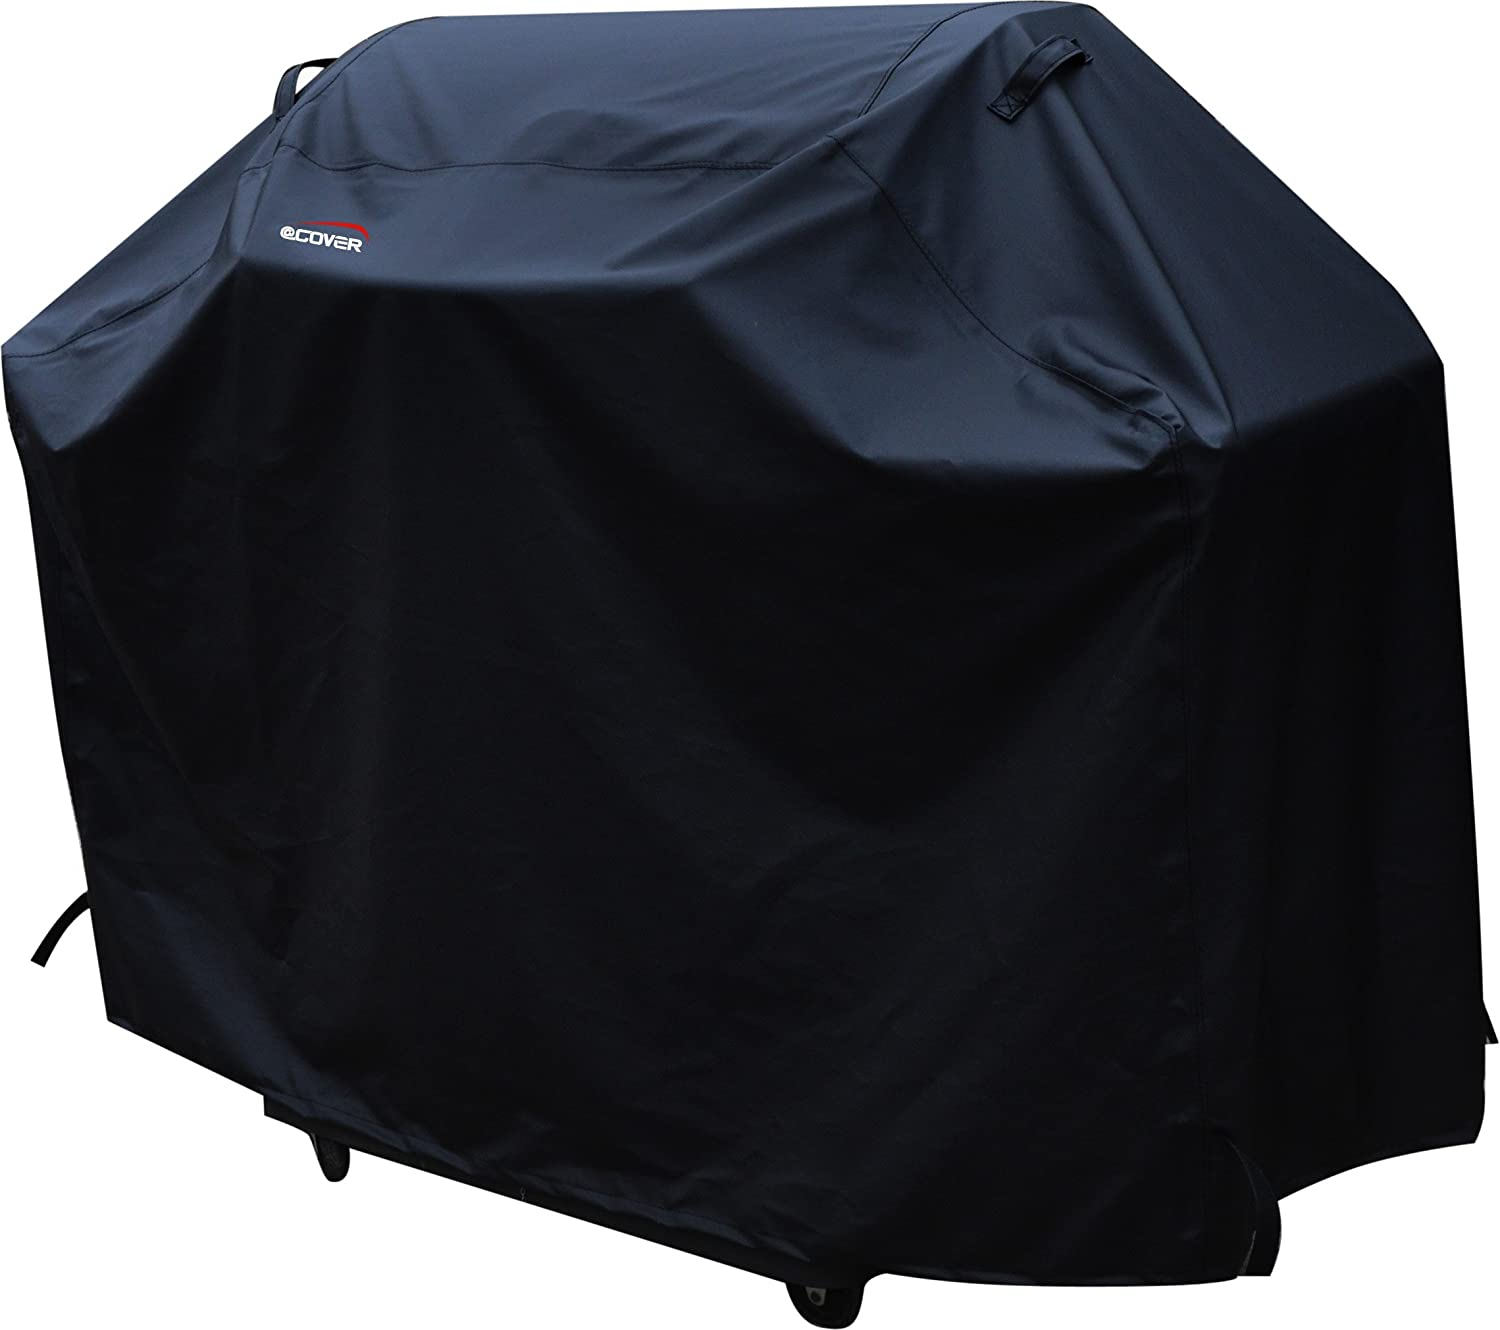 Holland Char Broil Medium Brinkmann Jenn Air 58 a1COVER Grill Cover,Heavy Duty Waterproof Barbeque Grill Covers Fits Weber